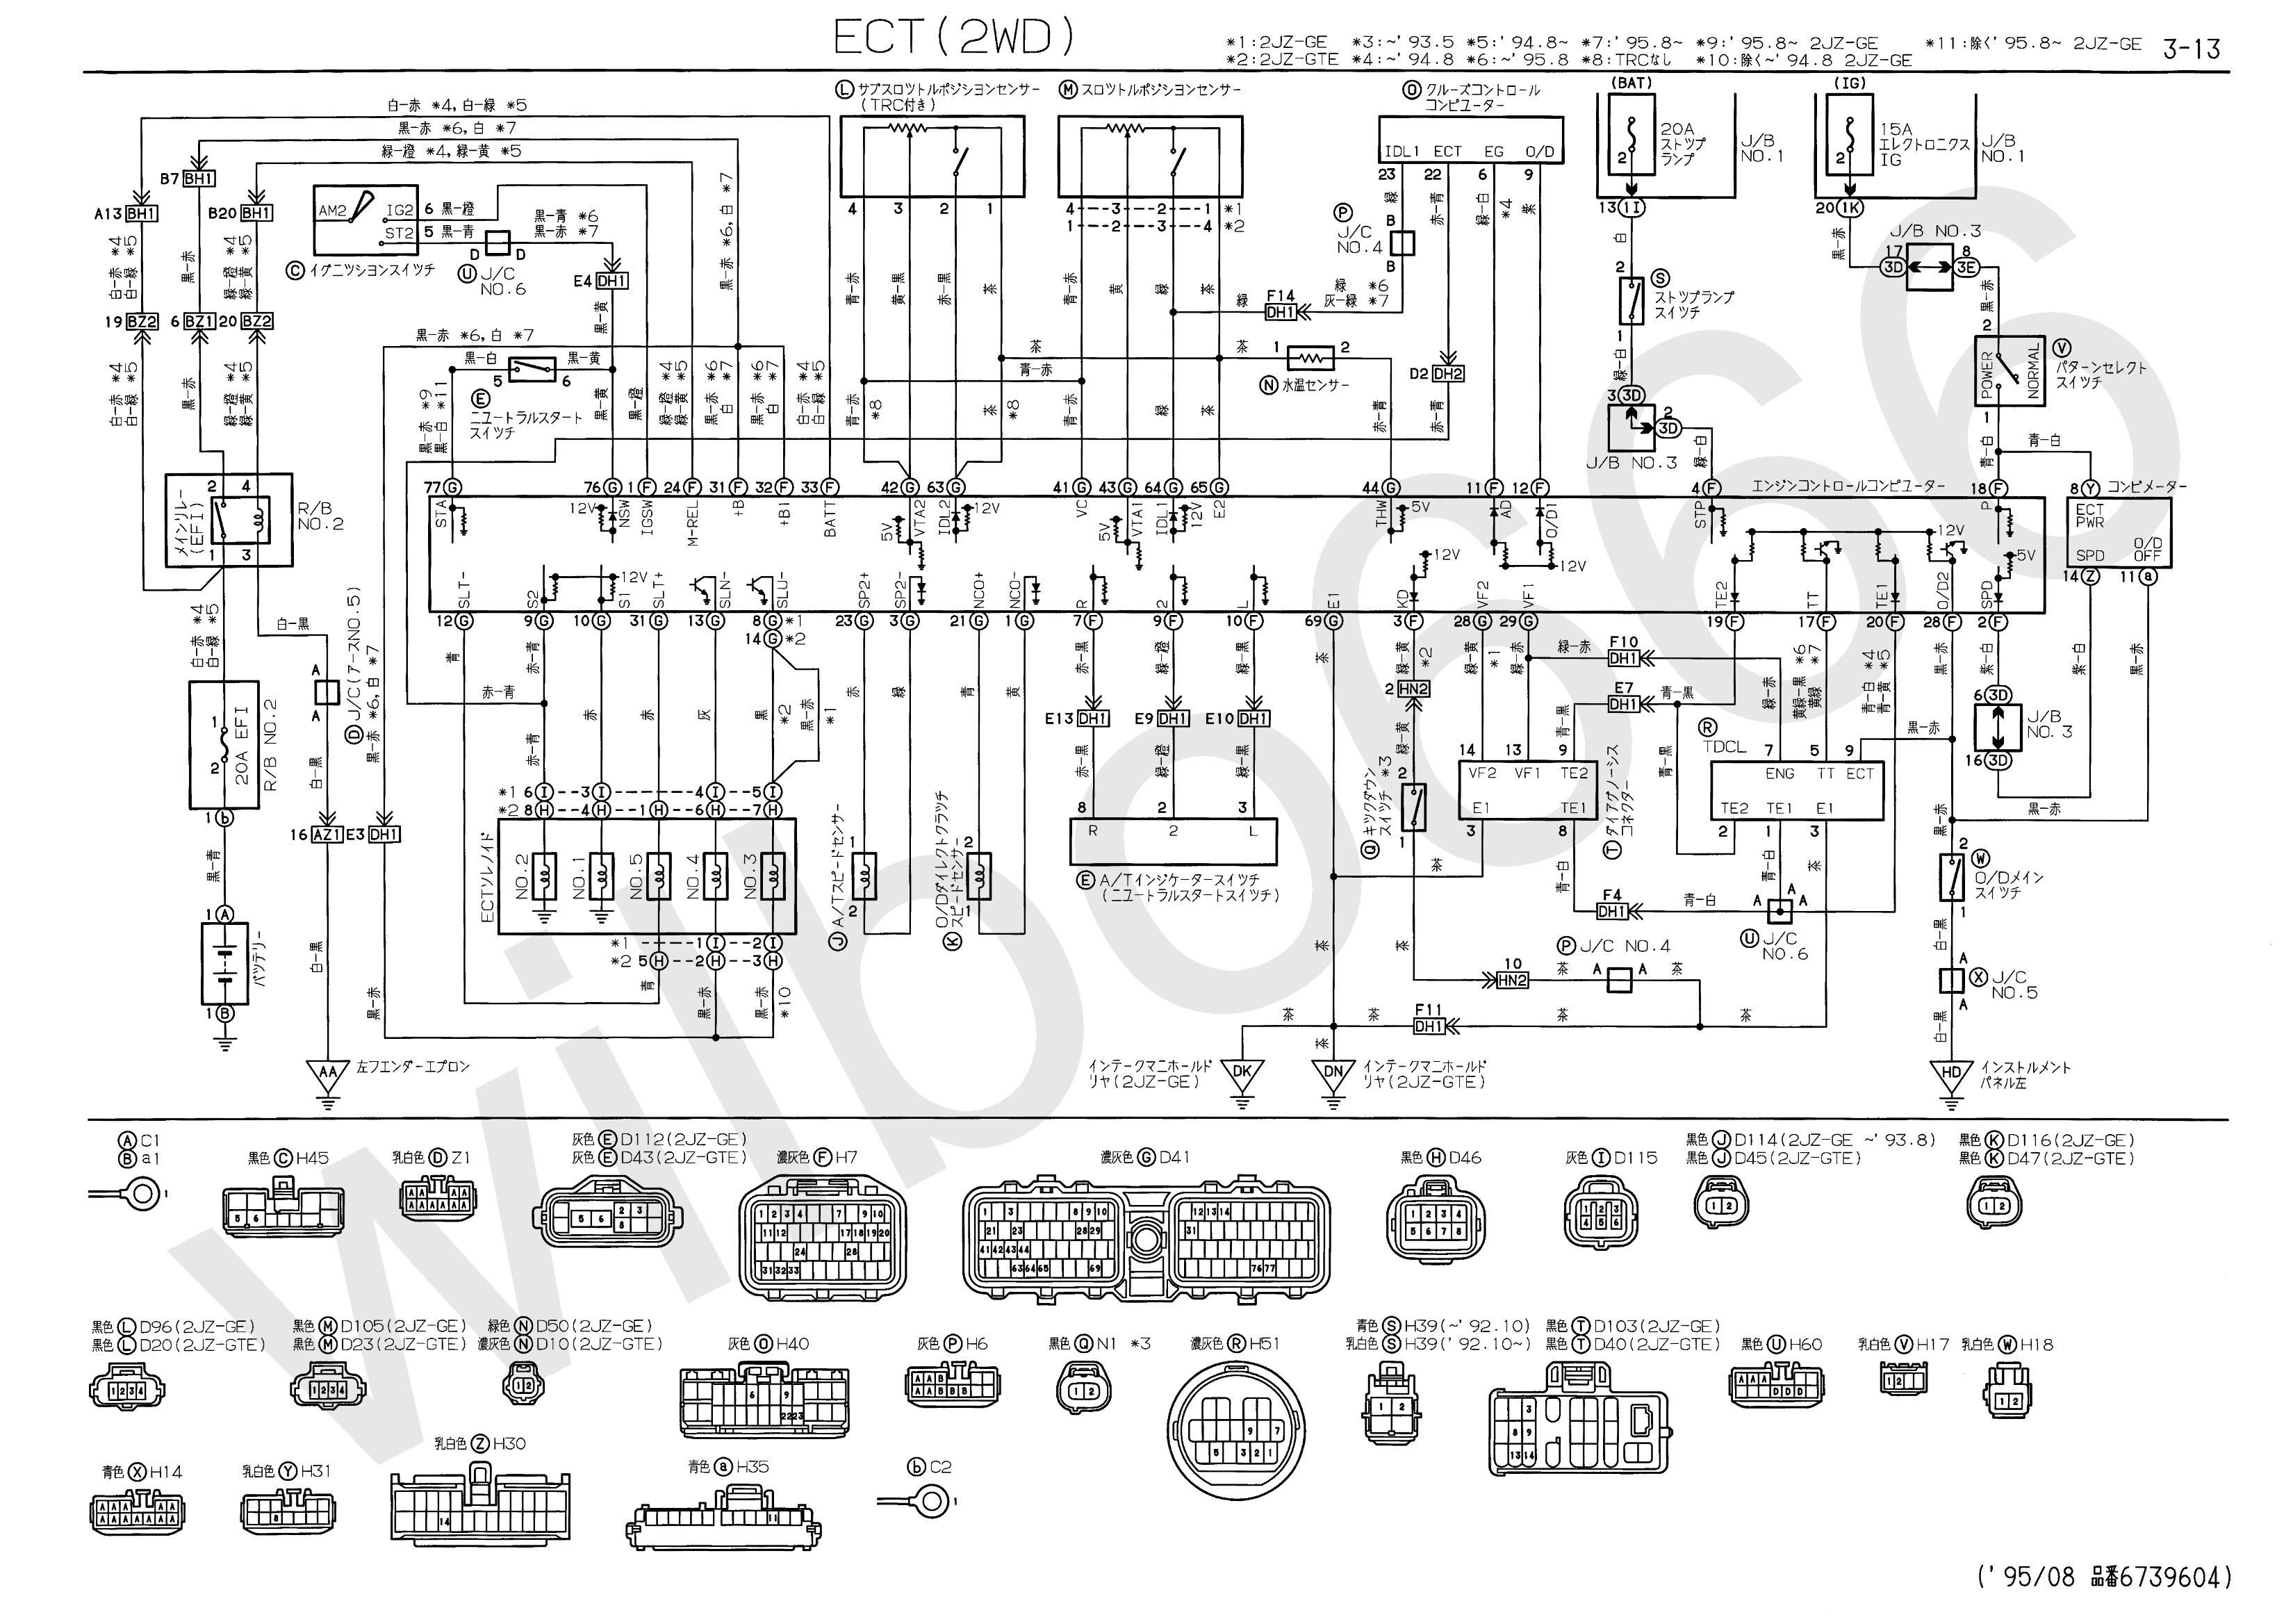 small resolution of toyota wiring diagrams 01 charts free diagram images toyota wiring diagrams car parts download